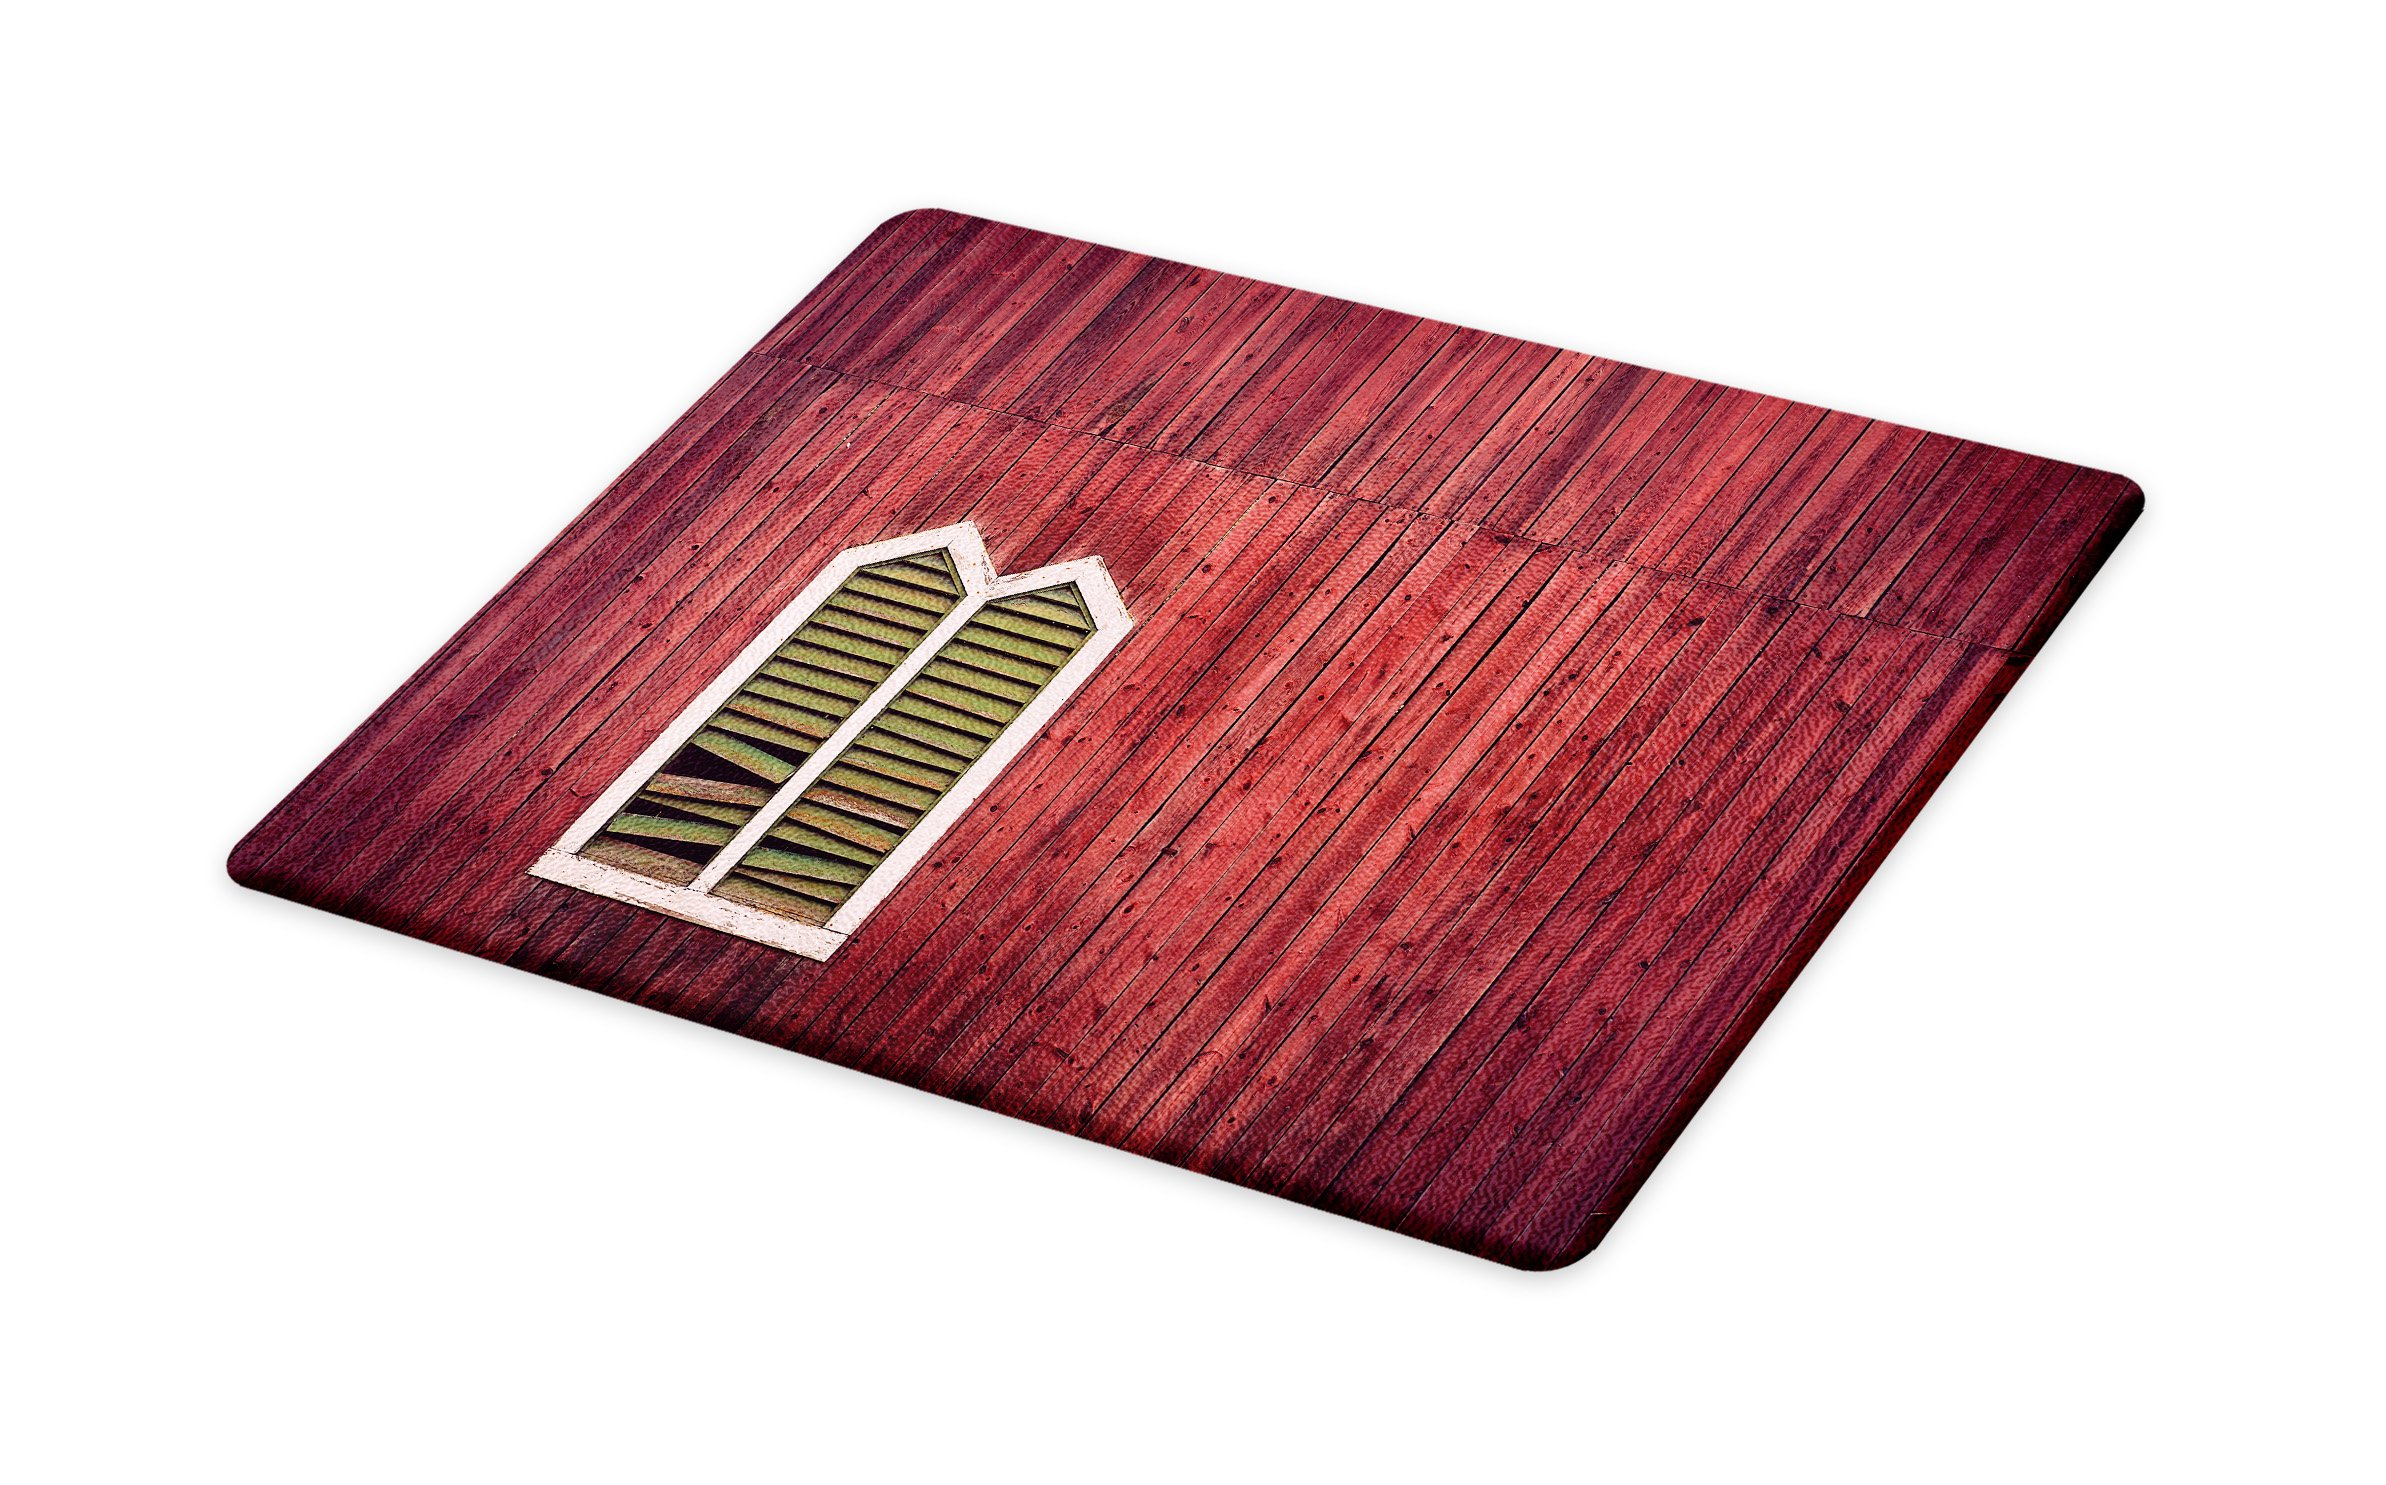 Lunarable Shutters Cutting Board, Wooden Rustic Wall with Window and Broken Shutters Vertical Panels Traditional House, Decorative Tempered Glass Cutting and Serving Board, Large Size, Burgundy